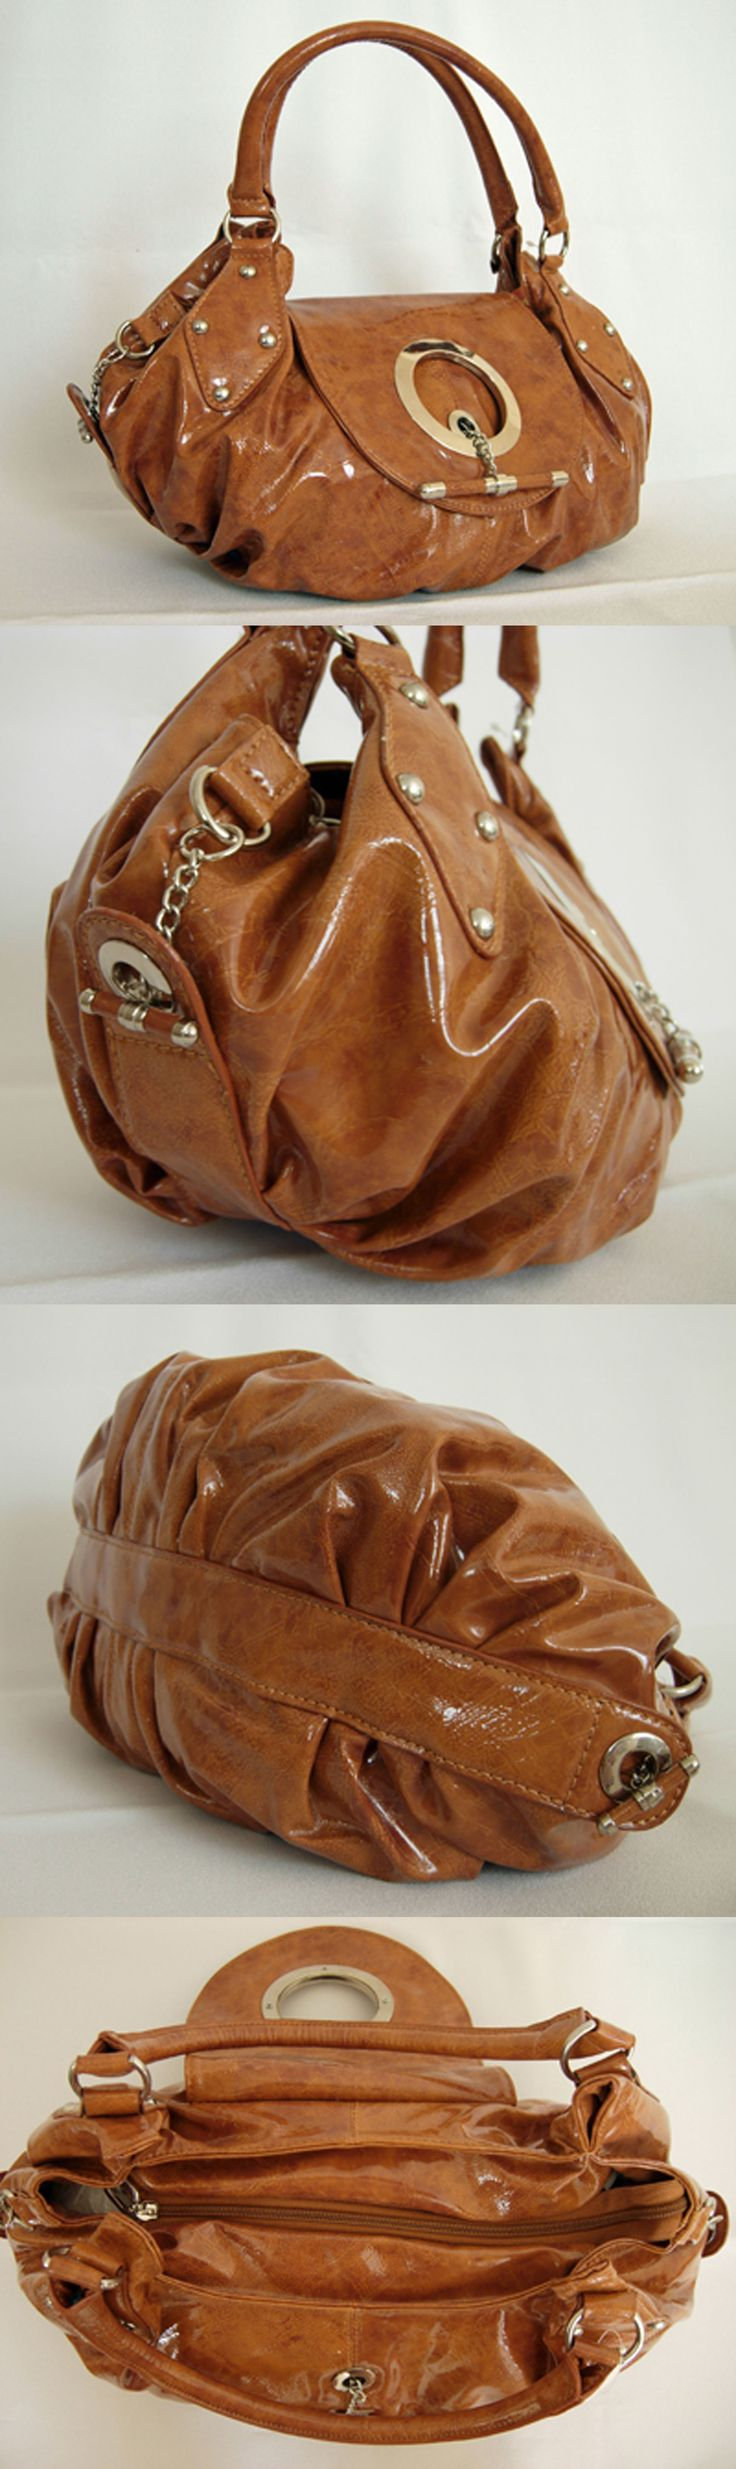 Mixed Items and Lots 15738: New Gorgeous Mocha Brown Handbag Bag Purse (V22) -> BUY IT NOW ONLY: $76 on eBay!